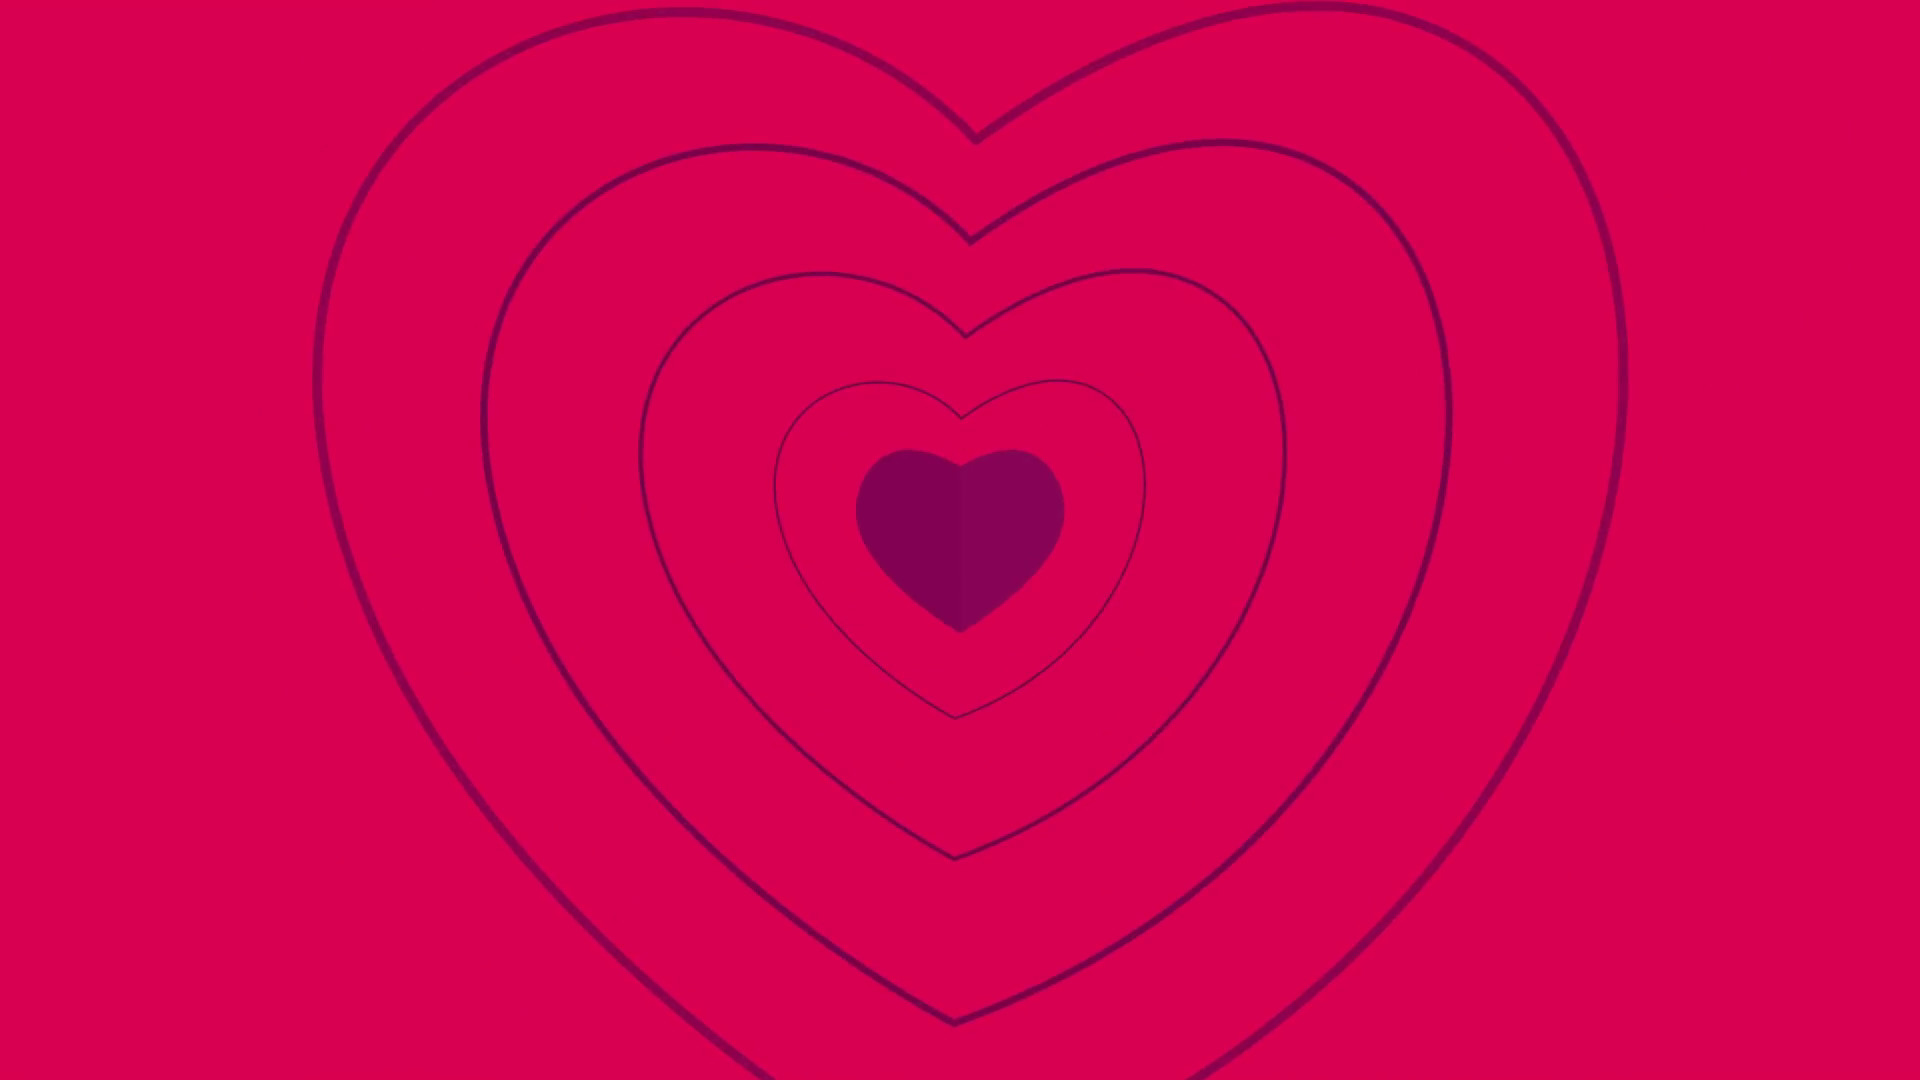 1920x1080 Seamless Looping Red and Pink Heart Animated Background. Cartoon animation  of Red hearts with sunburst